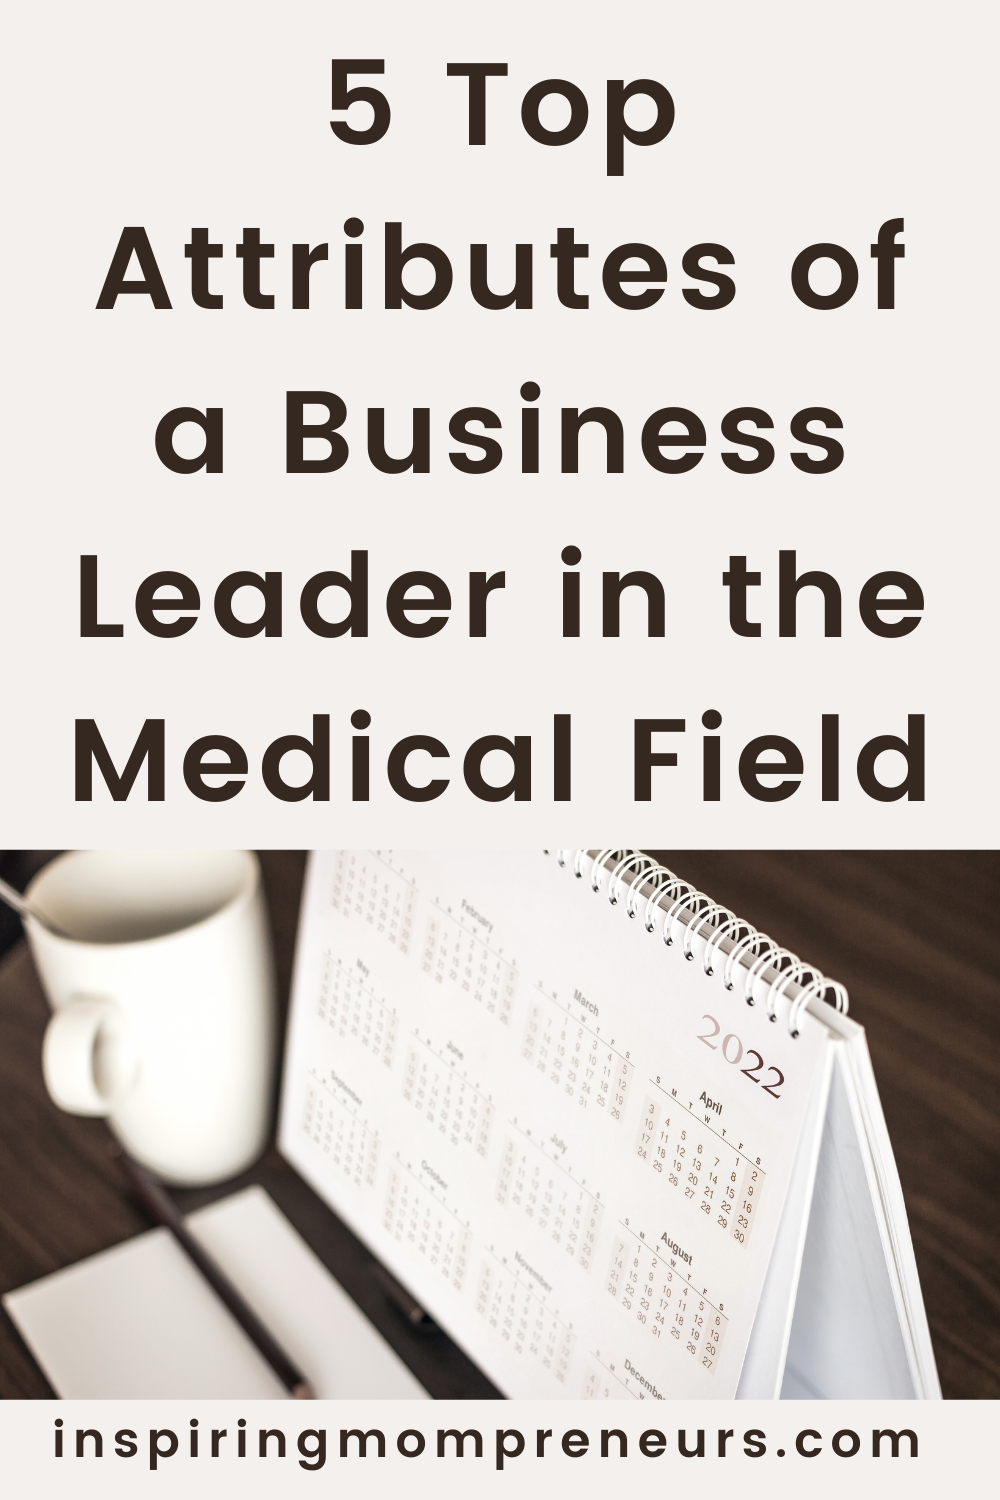 When it comes to the medical industry, strong leadership skills are vitally important. Here are the 5 top attributes of a business leader in the medical field.